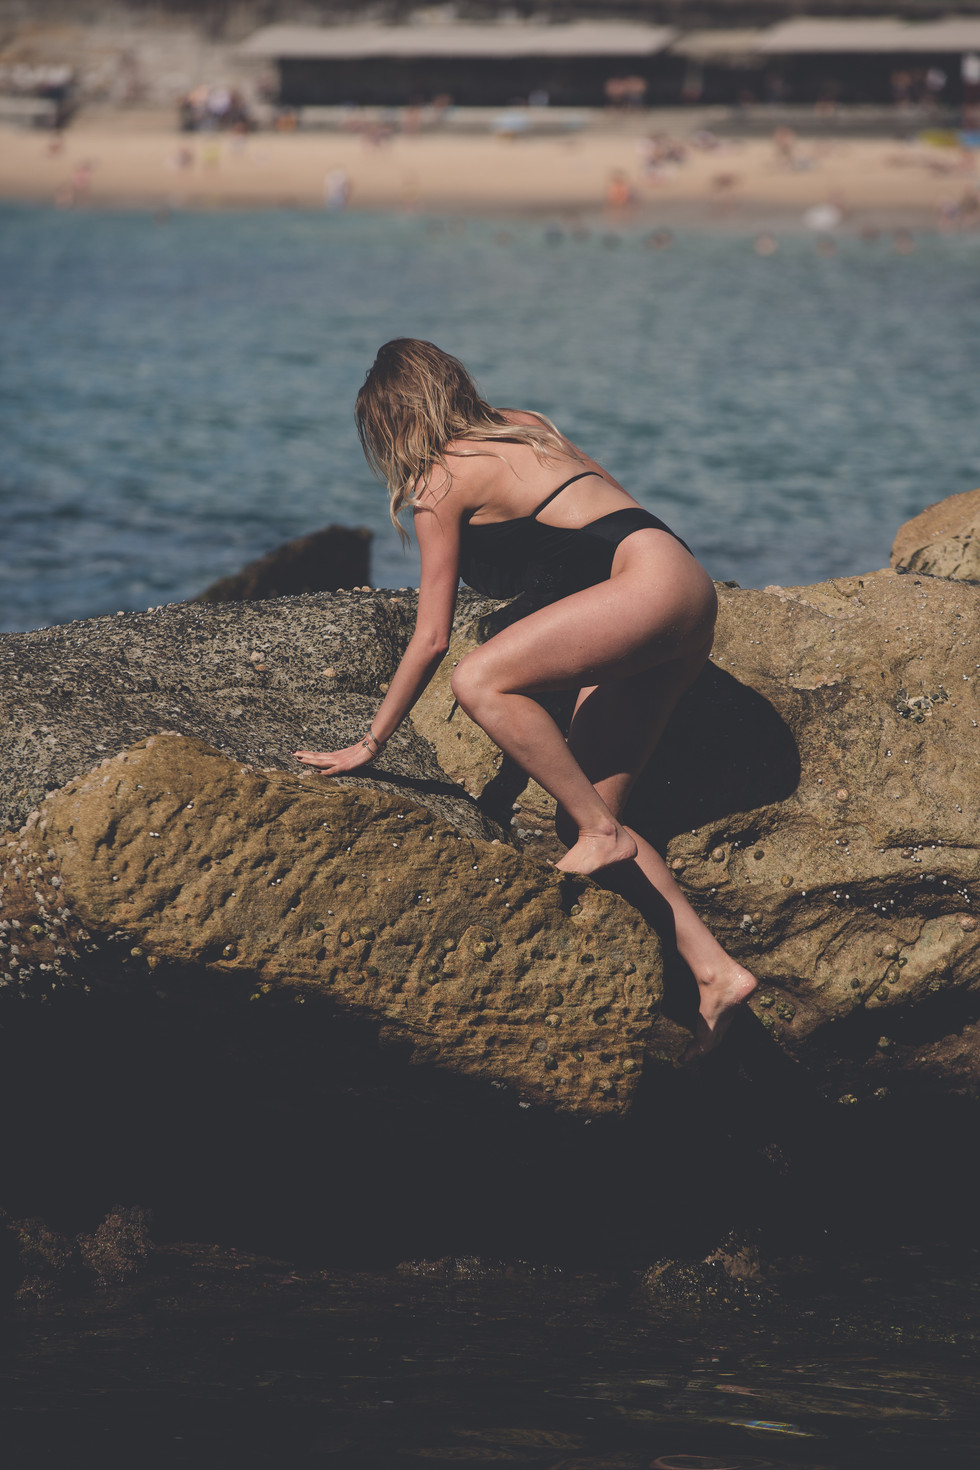 Kristy__by_CoogeePhotography-222596.jpg